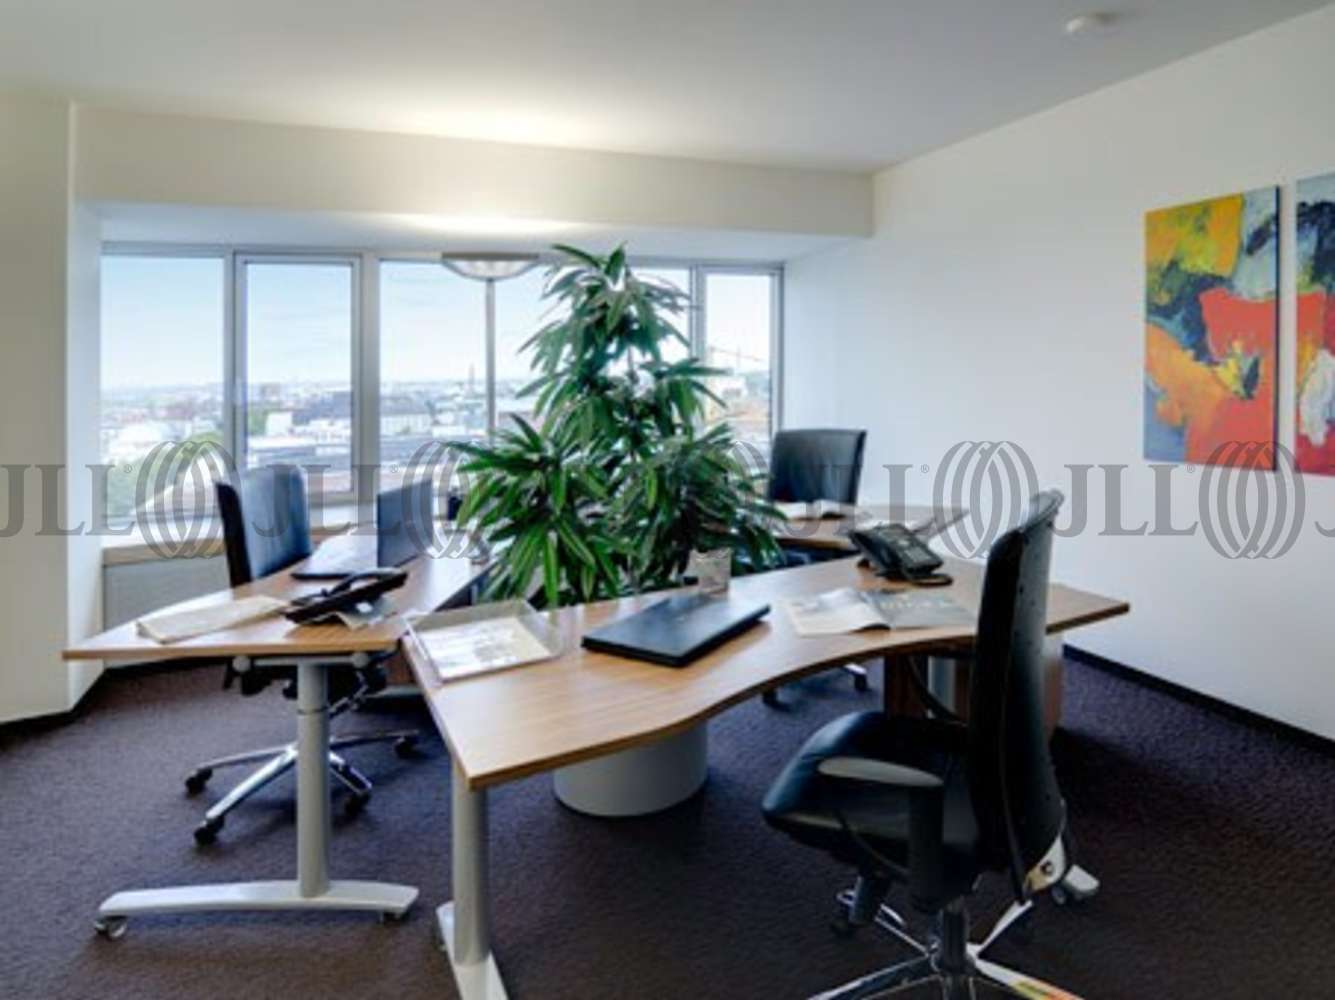 Coworking / flex office Frankfurt am main, 60314 -  Frankfurt am Main - C0033